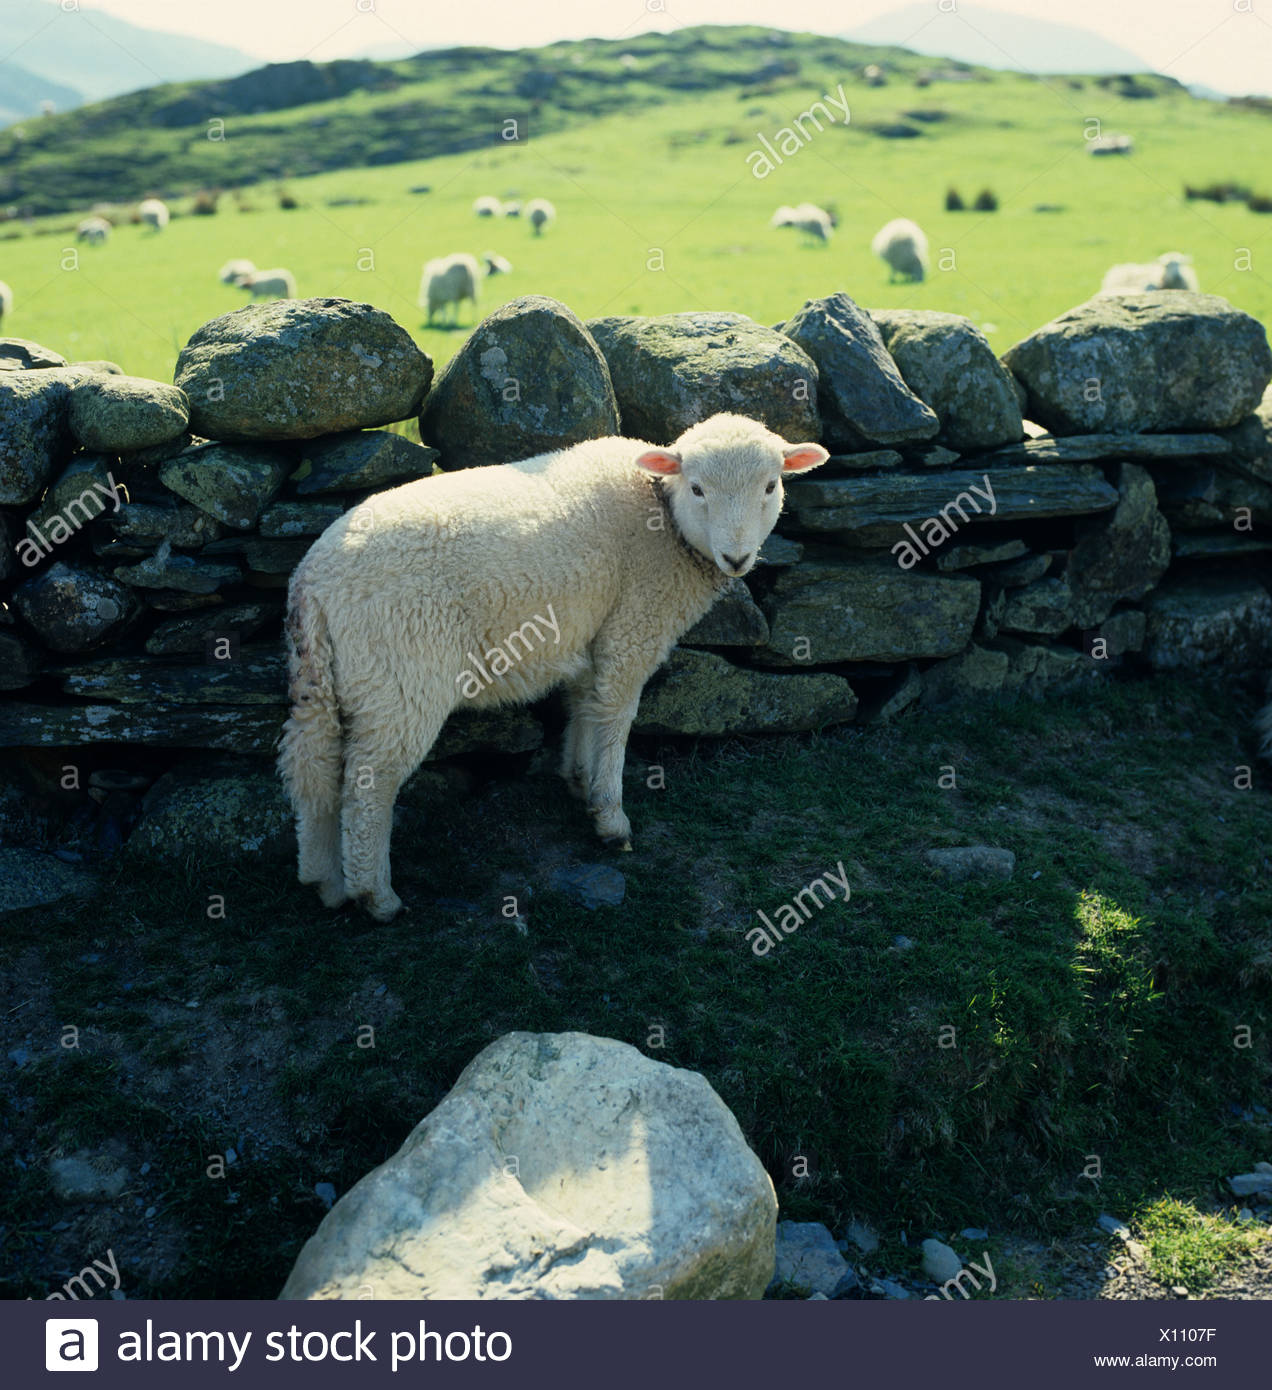 Welsh mountain sheep mise à l'abri de la lampe par un mur en pierre sèche dans la région de Snowdonia, Pays de Galles Photo Stock